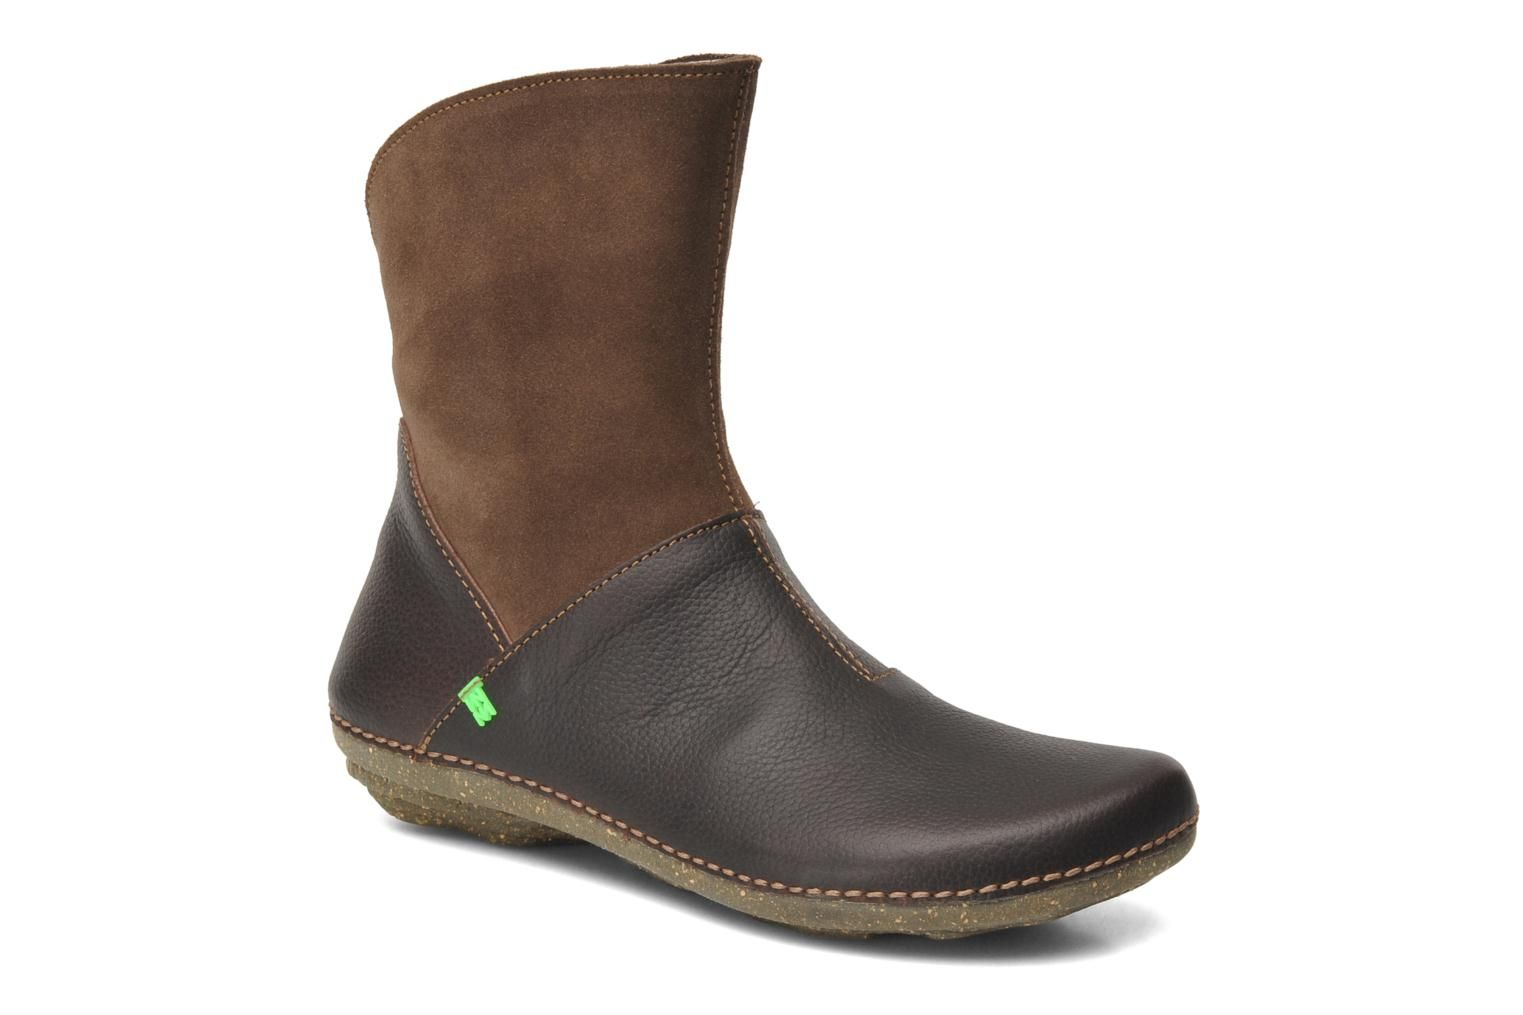 Autumn / Winter 2017 El Naturalista Torcal N329 Ankle boots in Brown Best Of Popularity